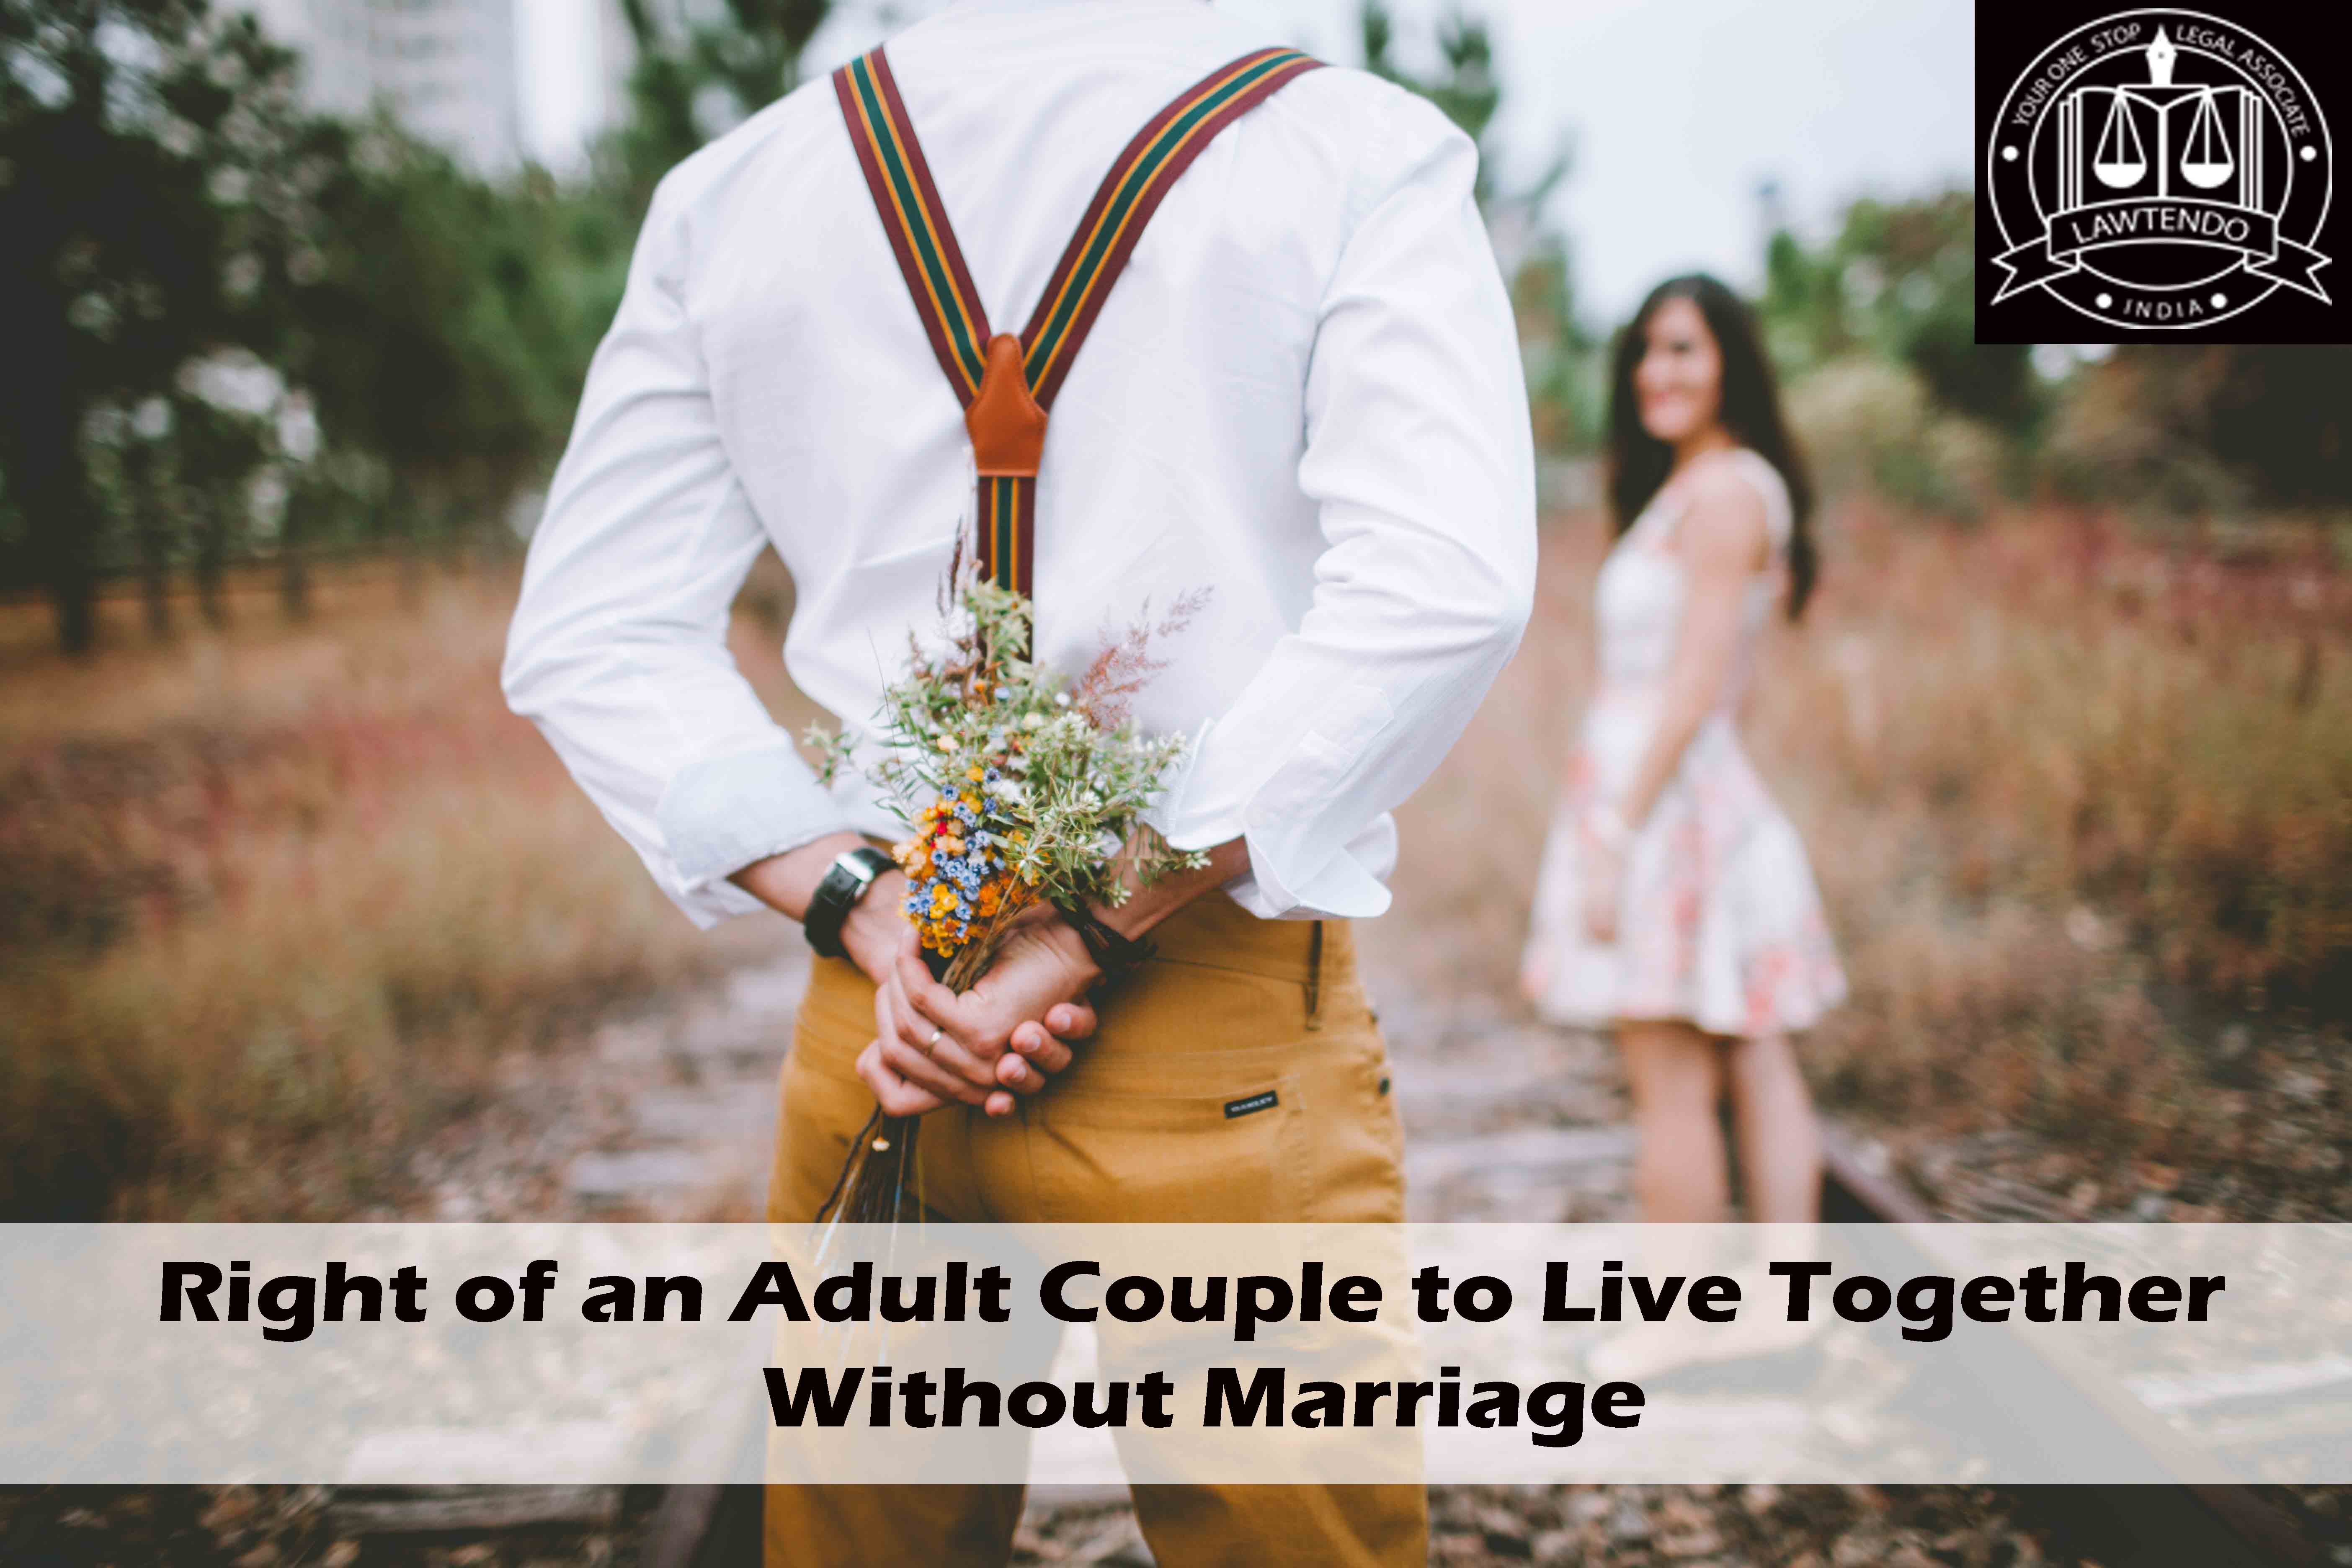 Right of an Adult Couple to Live Together Without Marriage